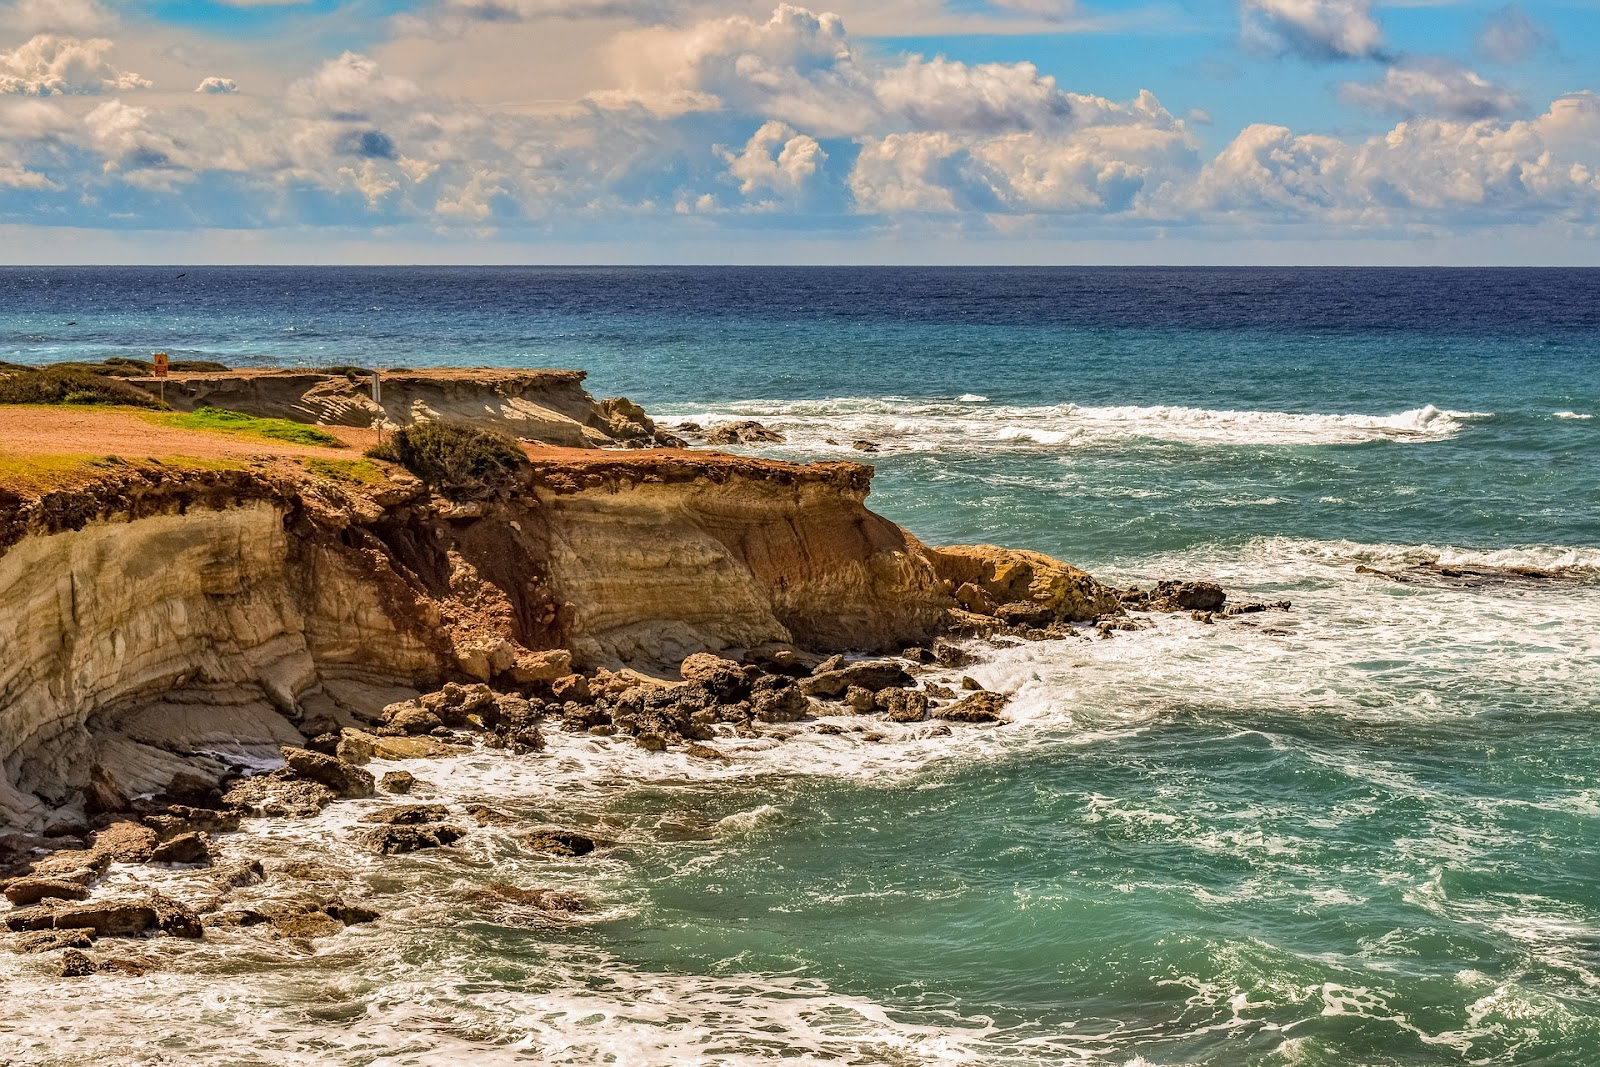 paphos shore, dramatic coastline with cliffs and blue water hitting the coast. cloudy yet sunny day in cyprus